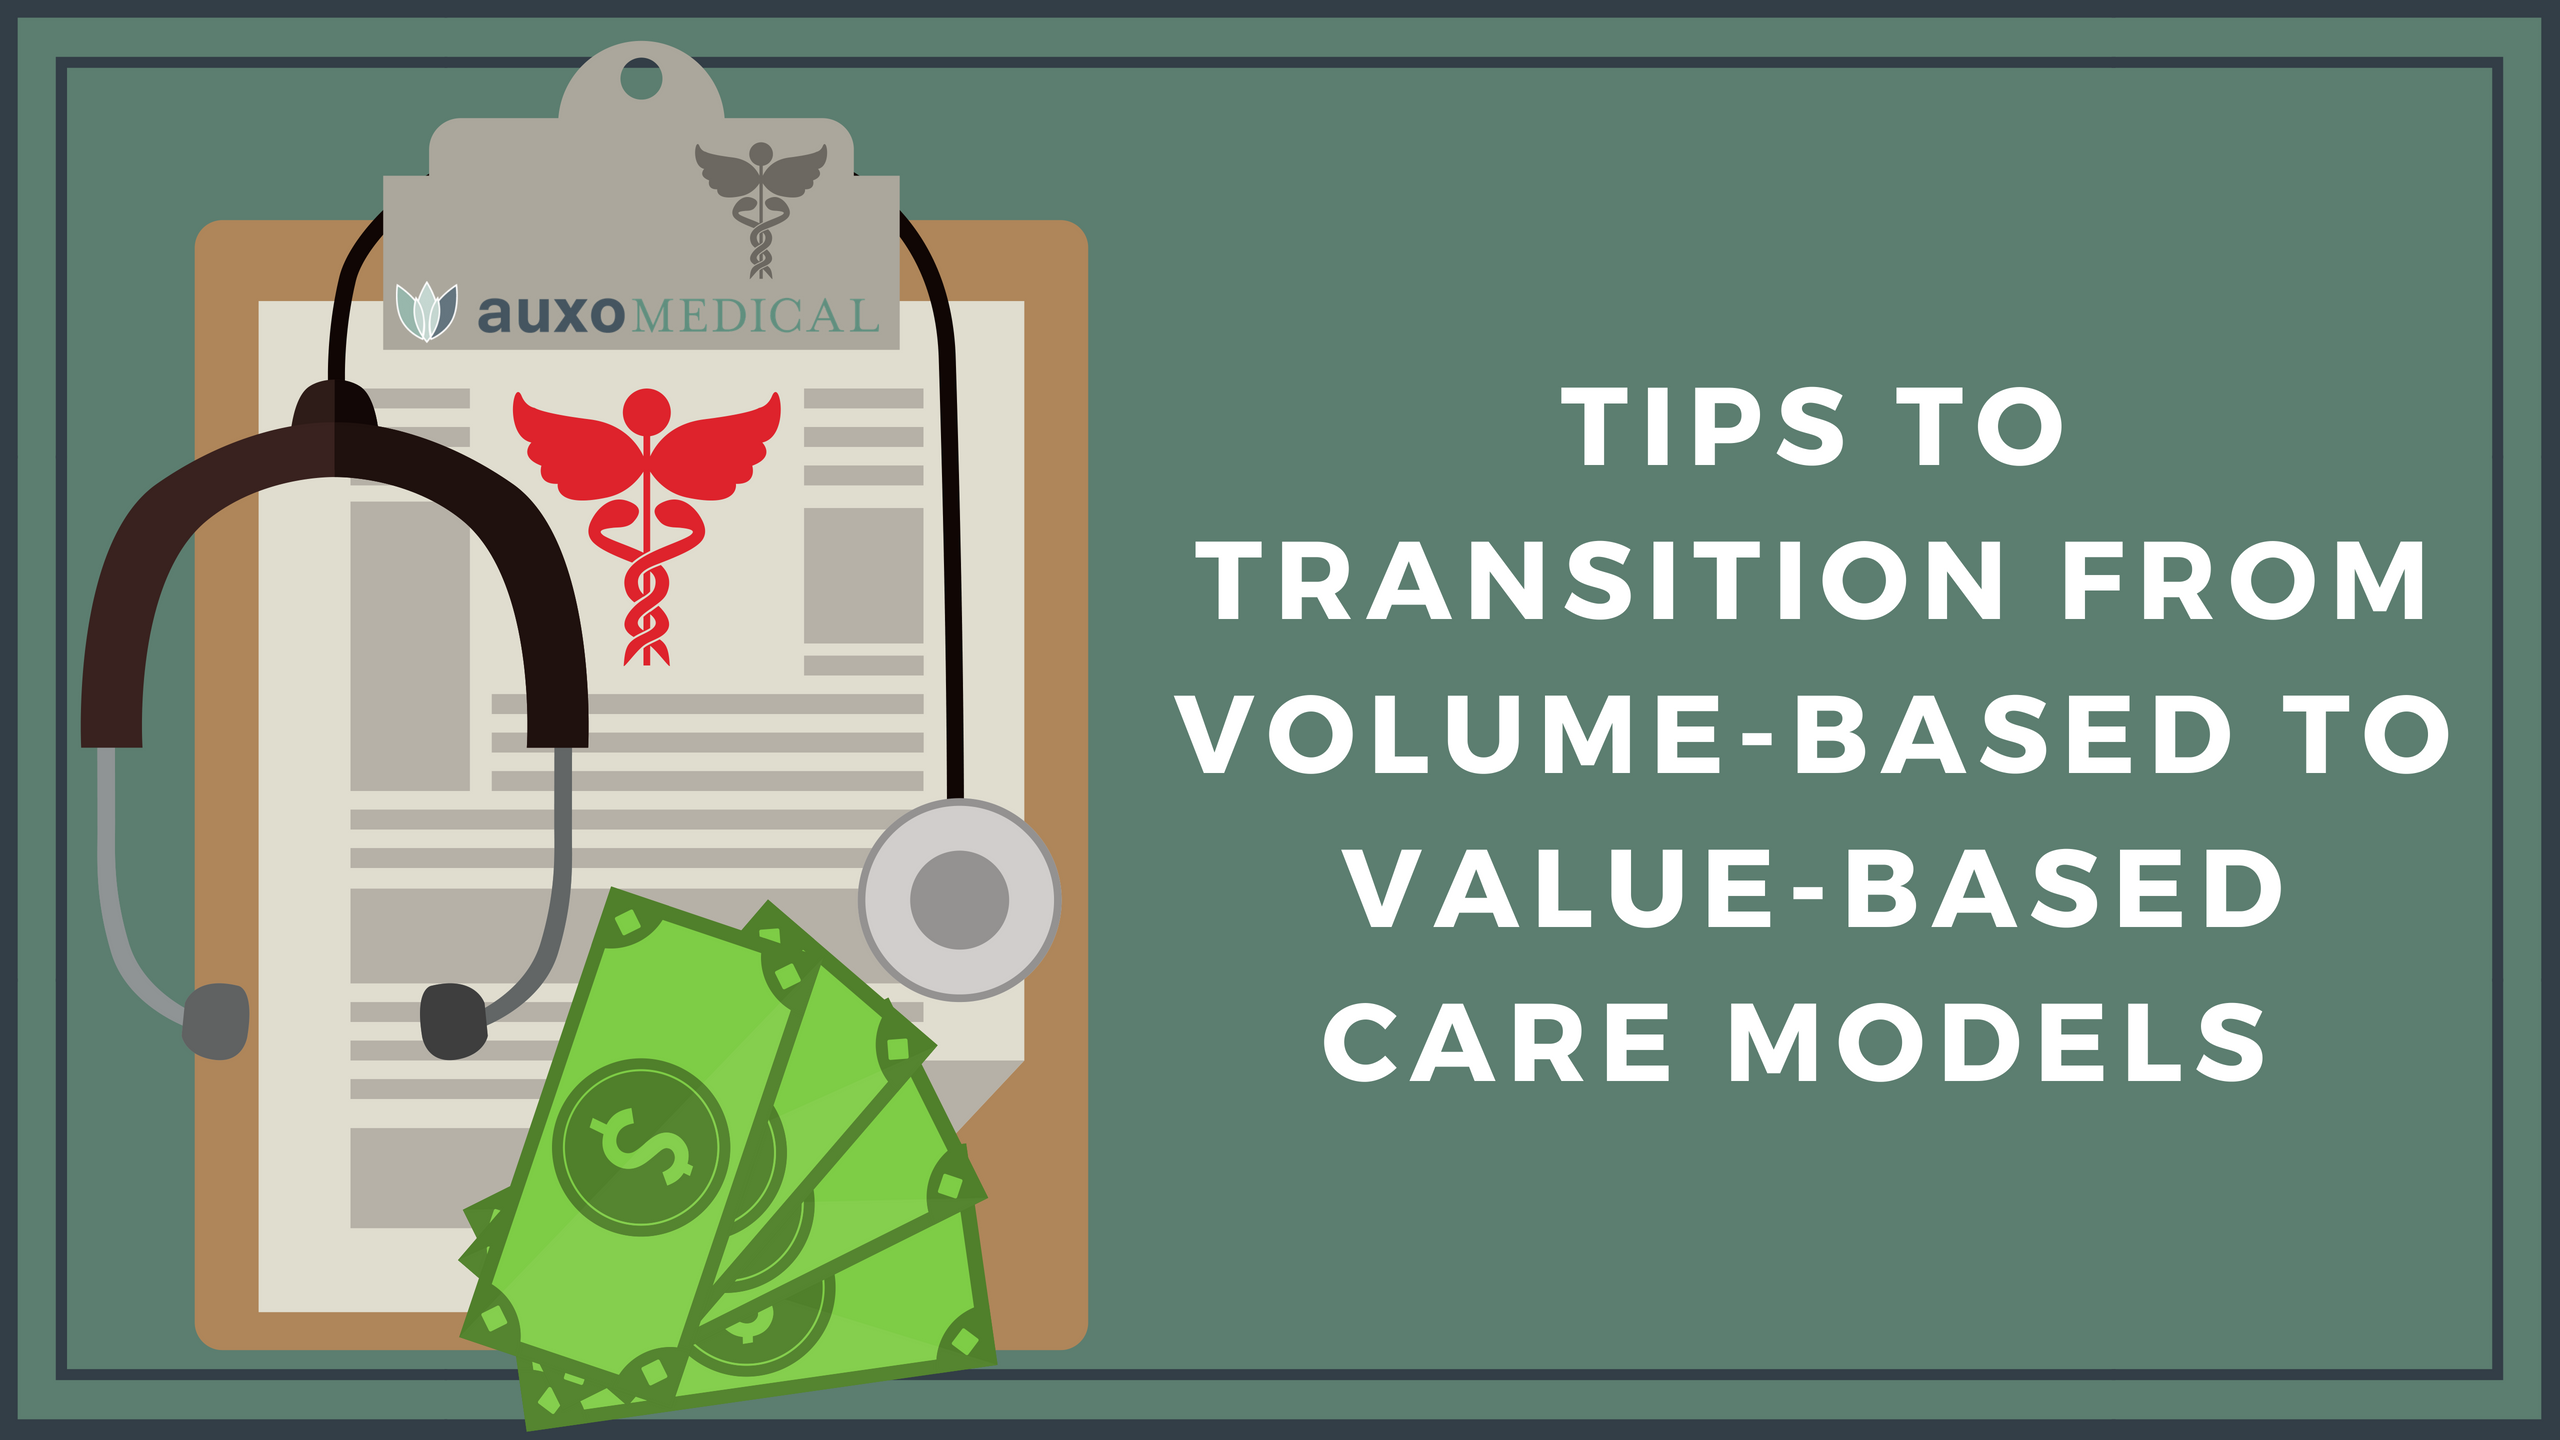 tips-to-transition-from-volume-based-to-value-based-care-models-1